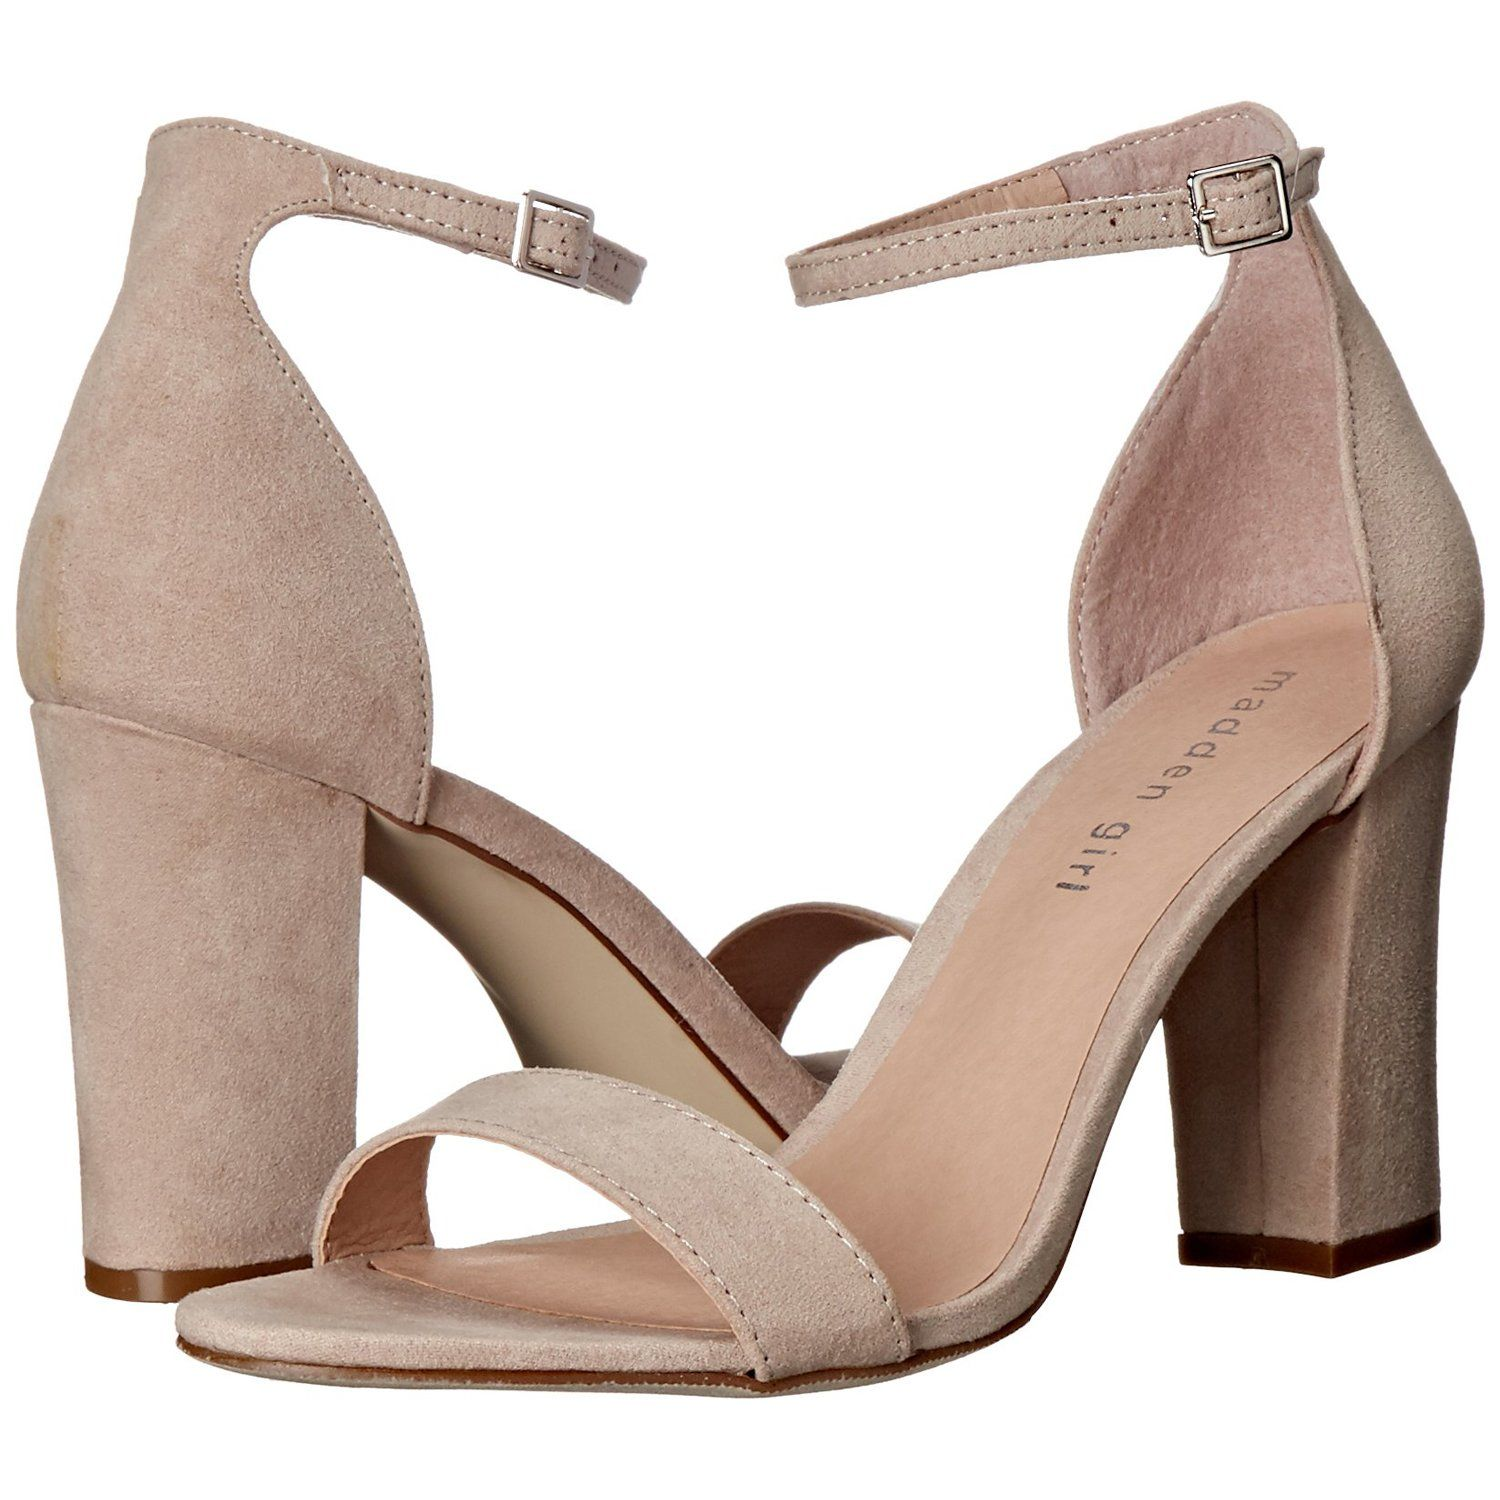 Madden Girl BEELLA - High heeled sandals - blush Whsq8uPfZk